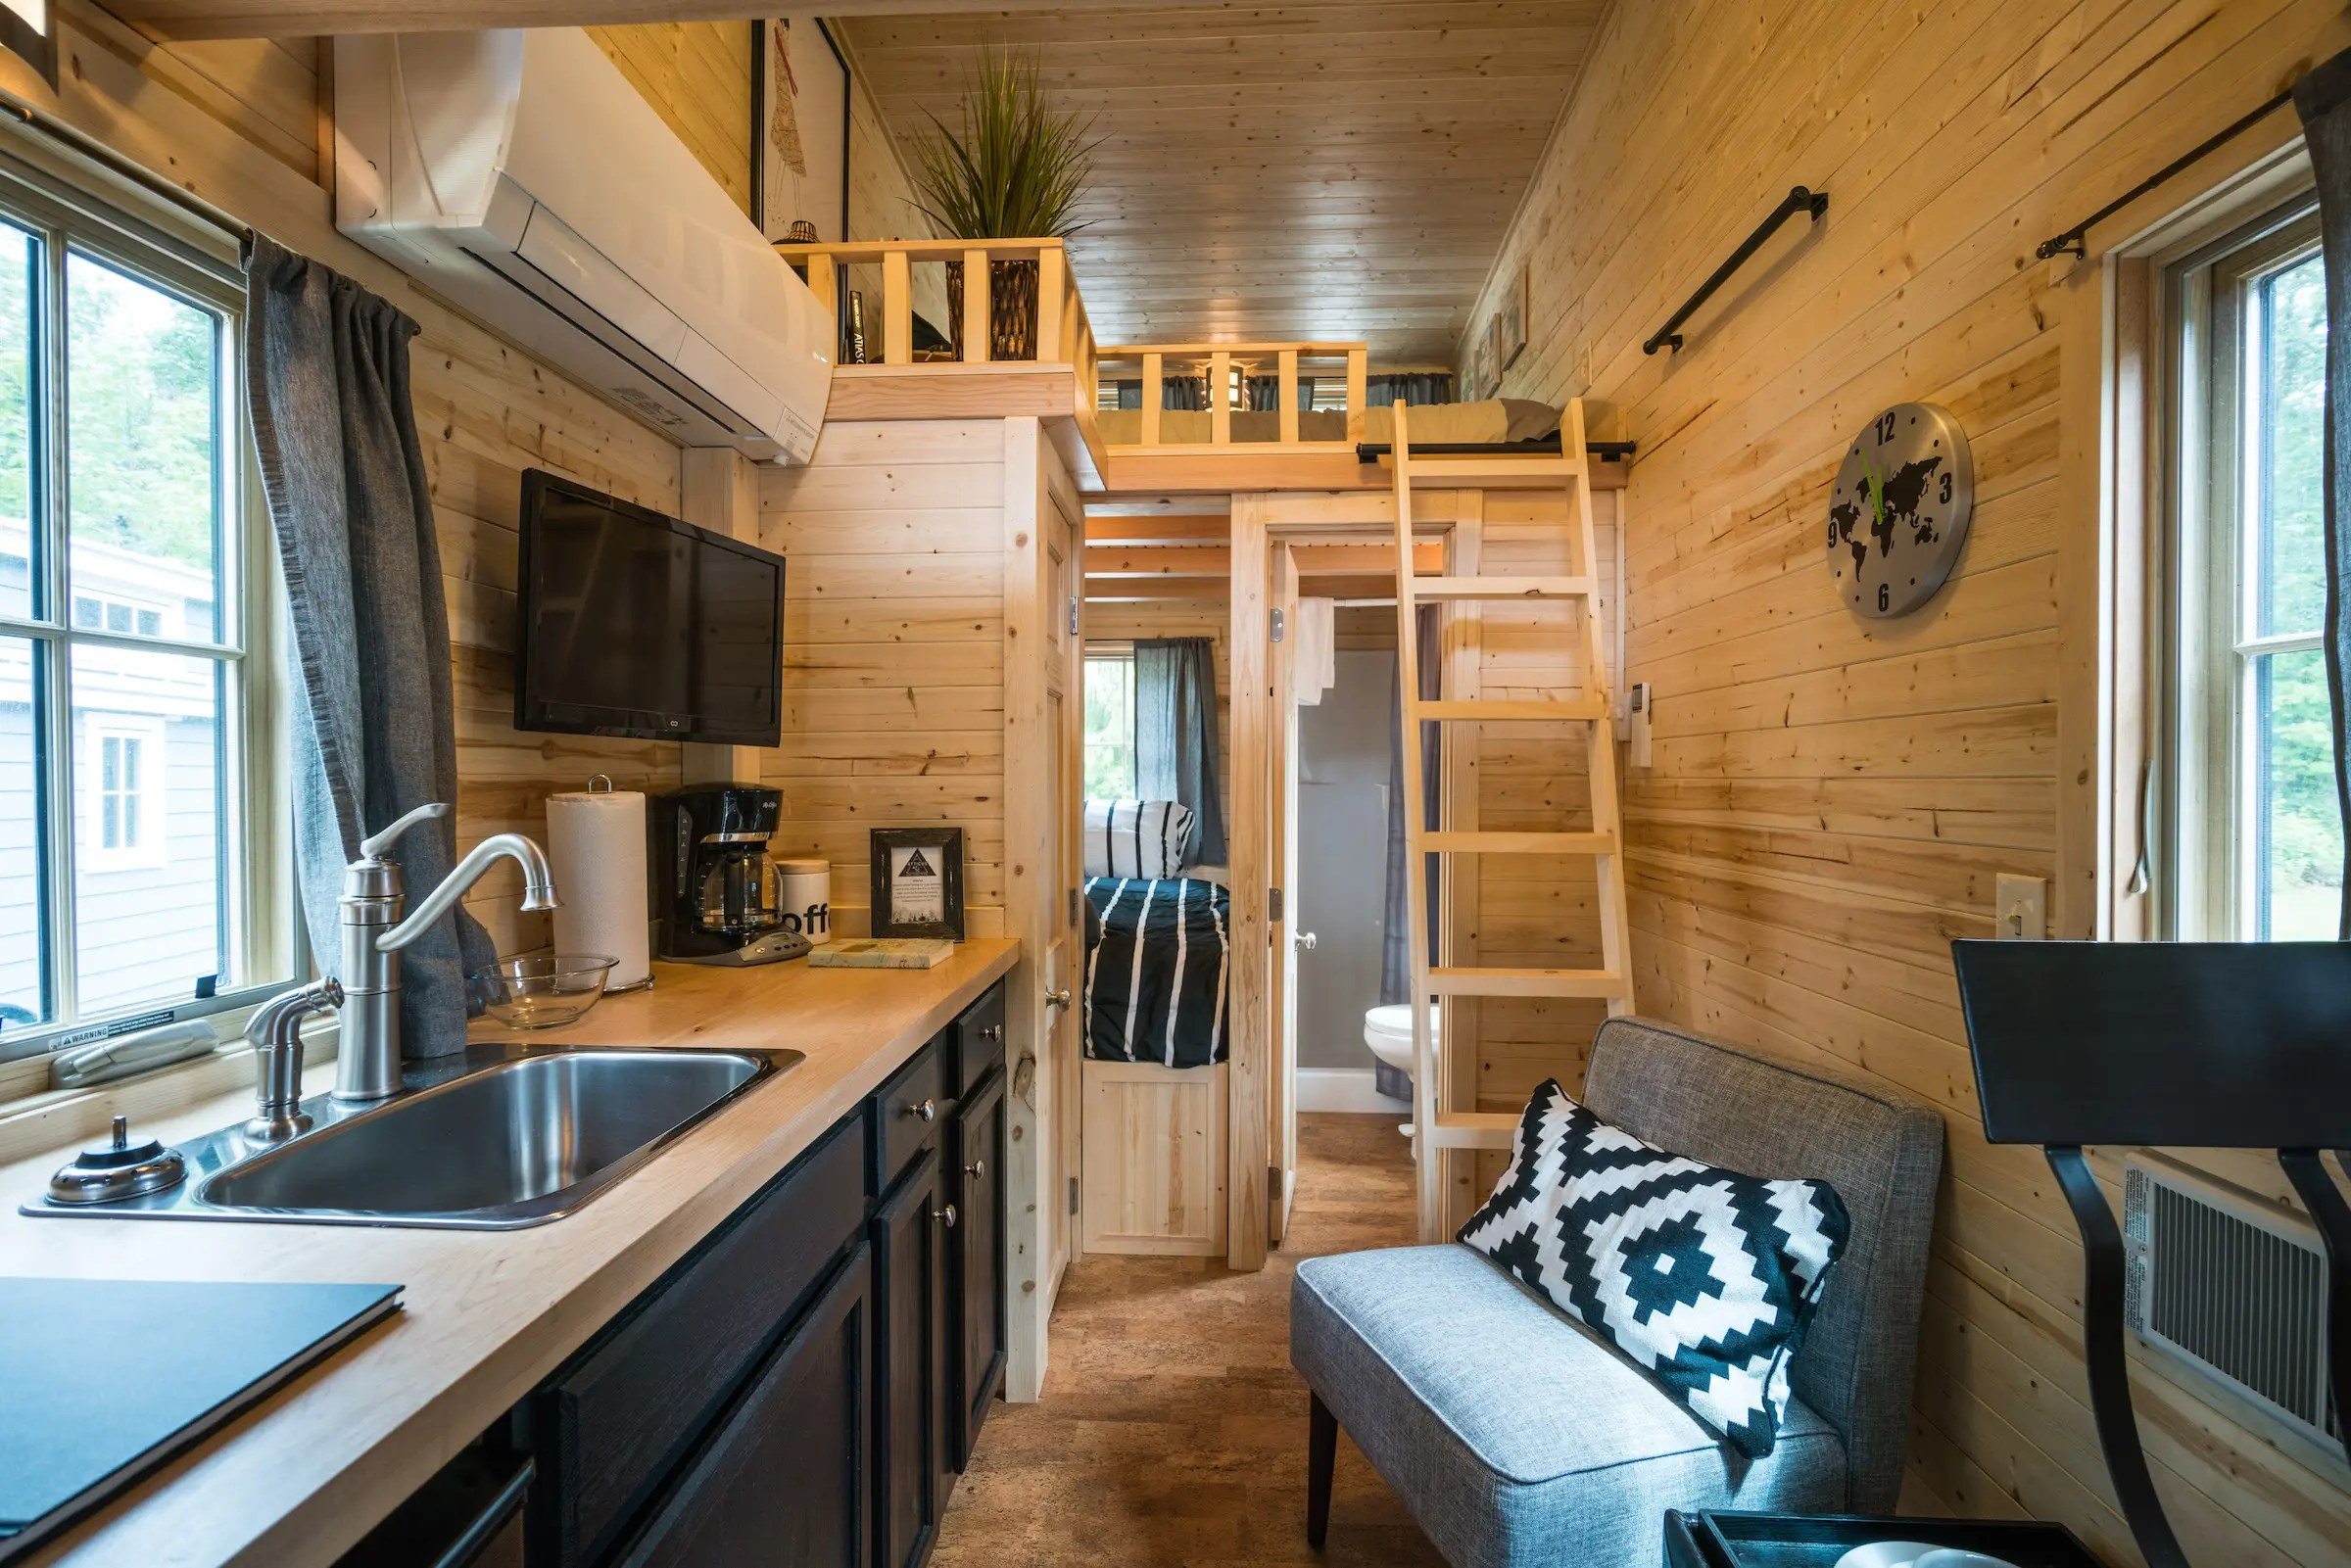 Portlands Tiny House Village Could Be The Future Of